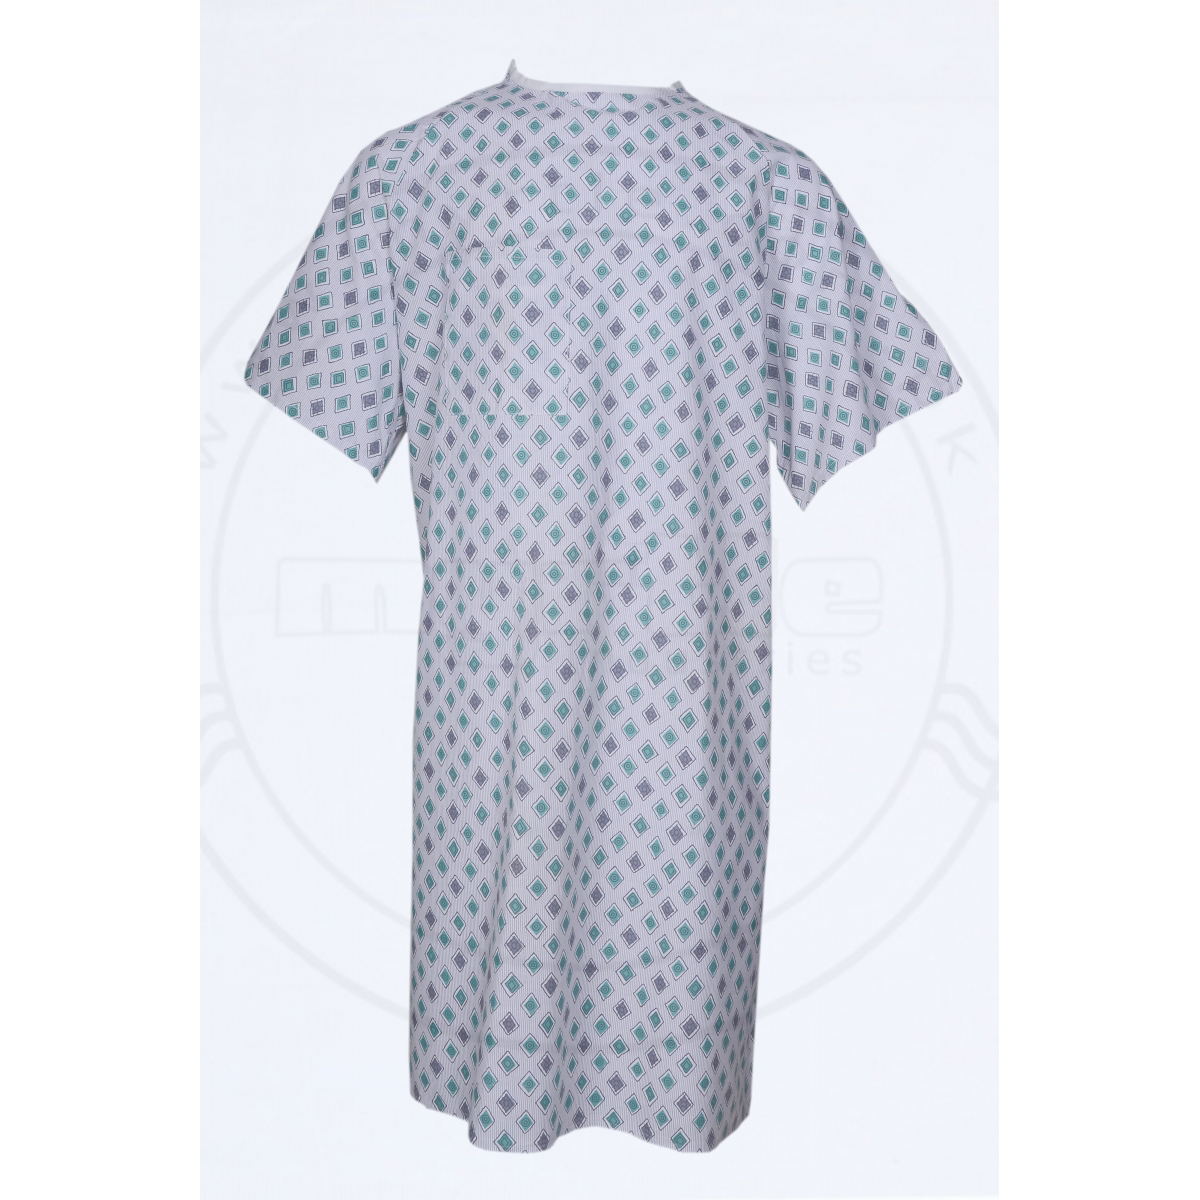 Printed Patient Gown